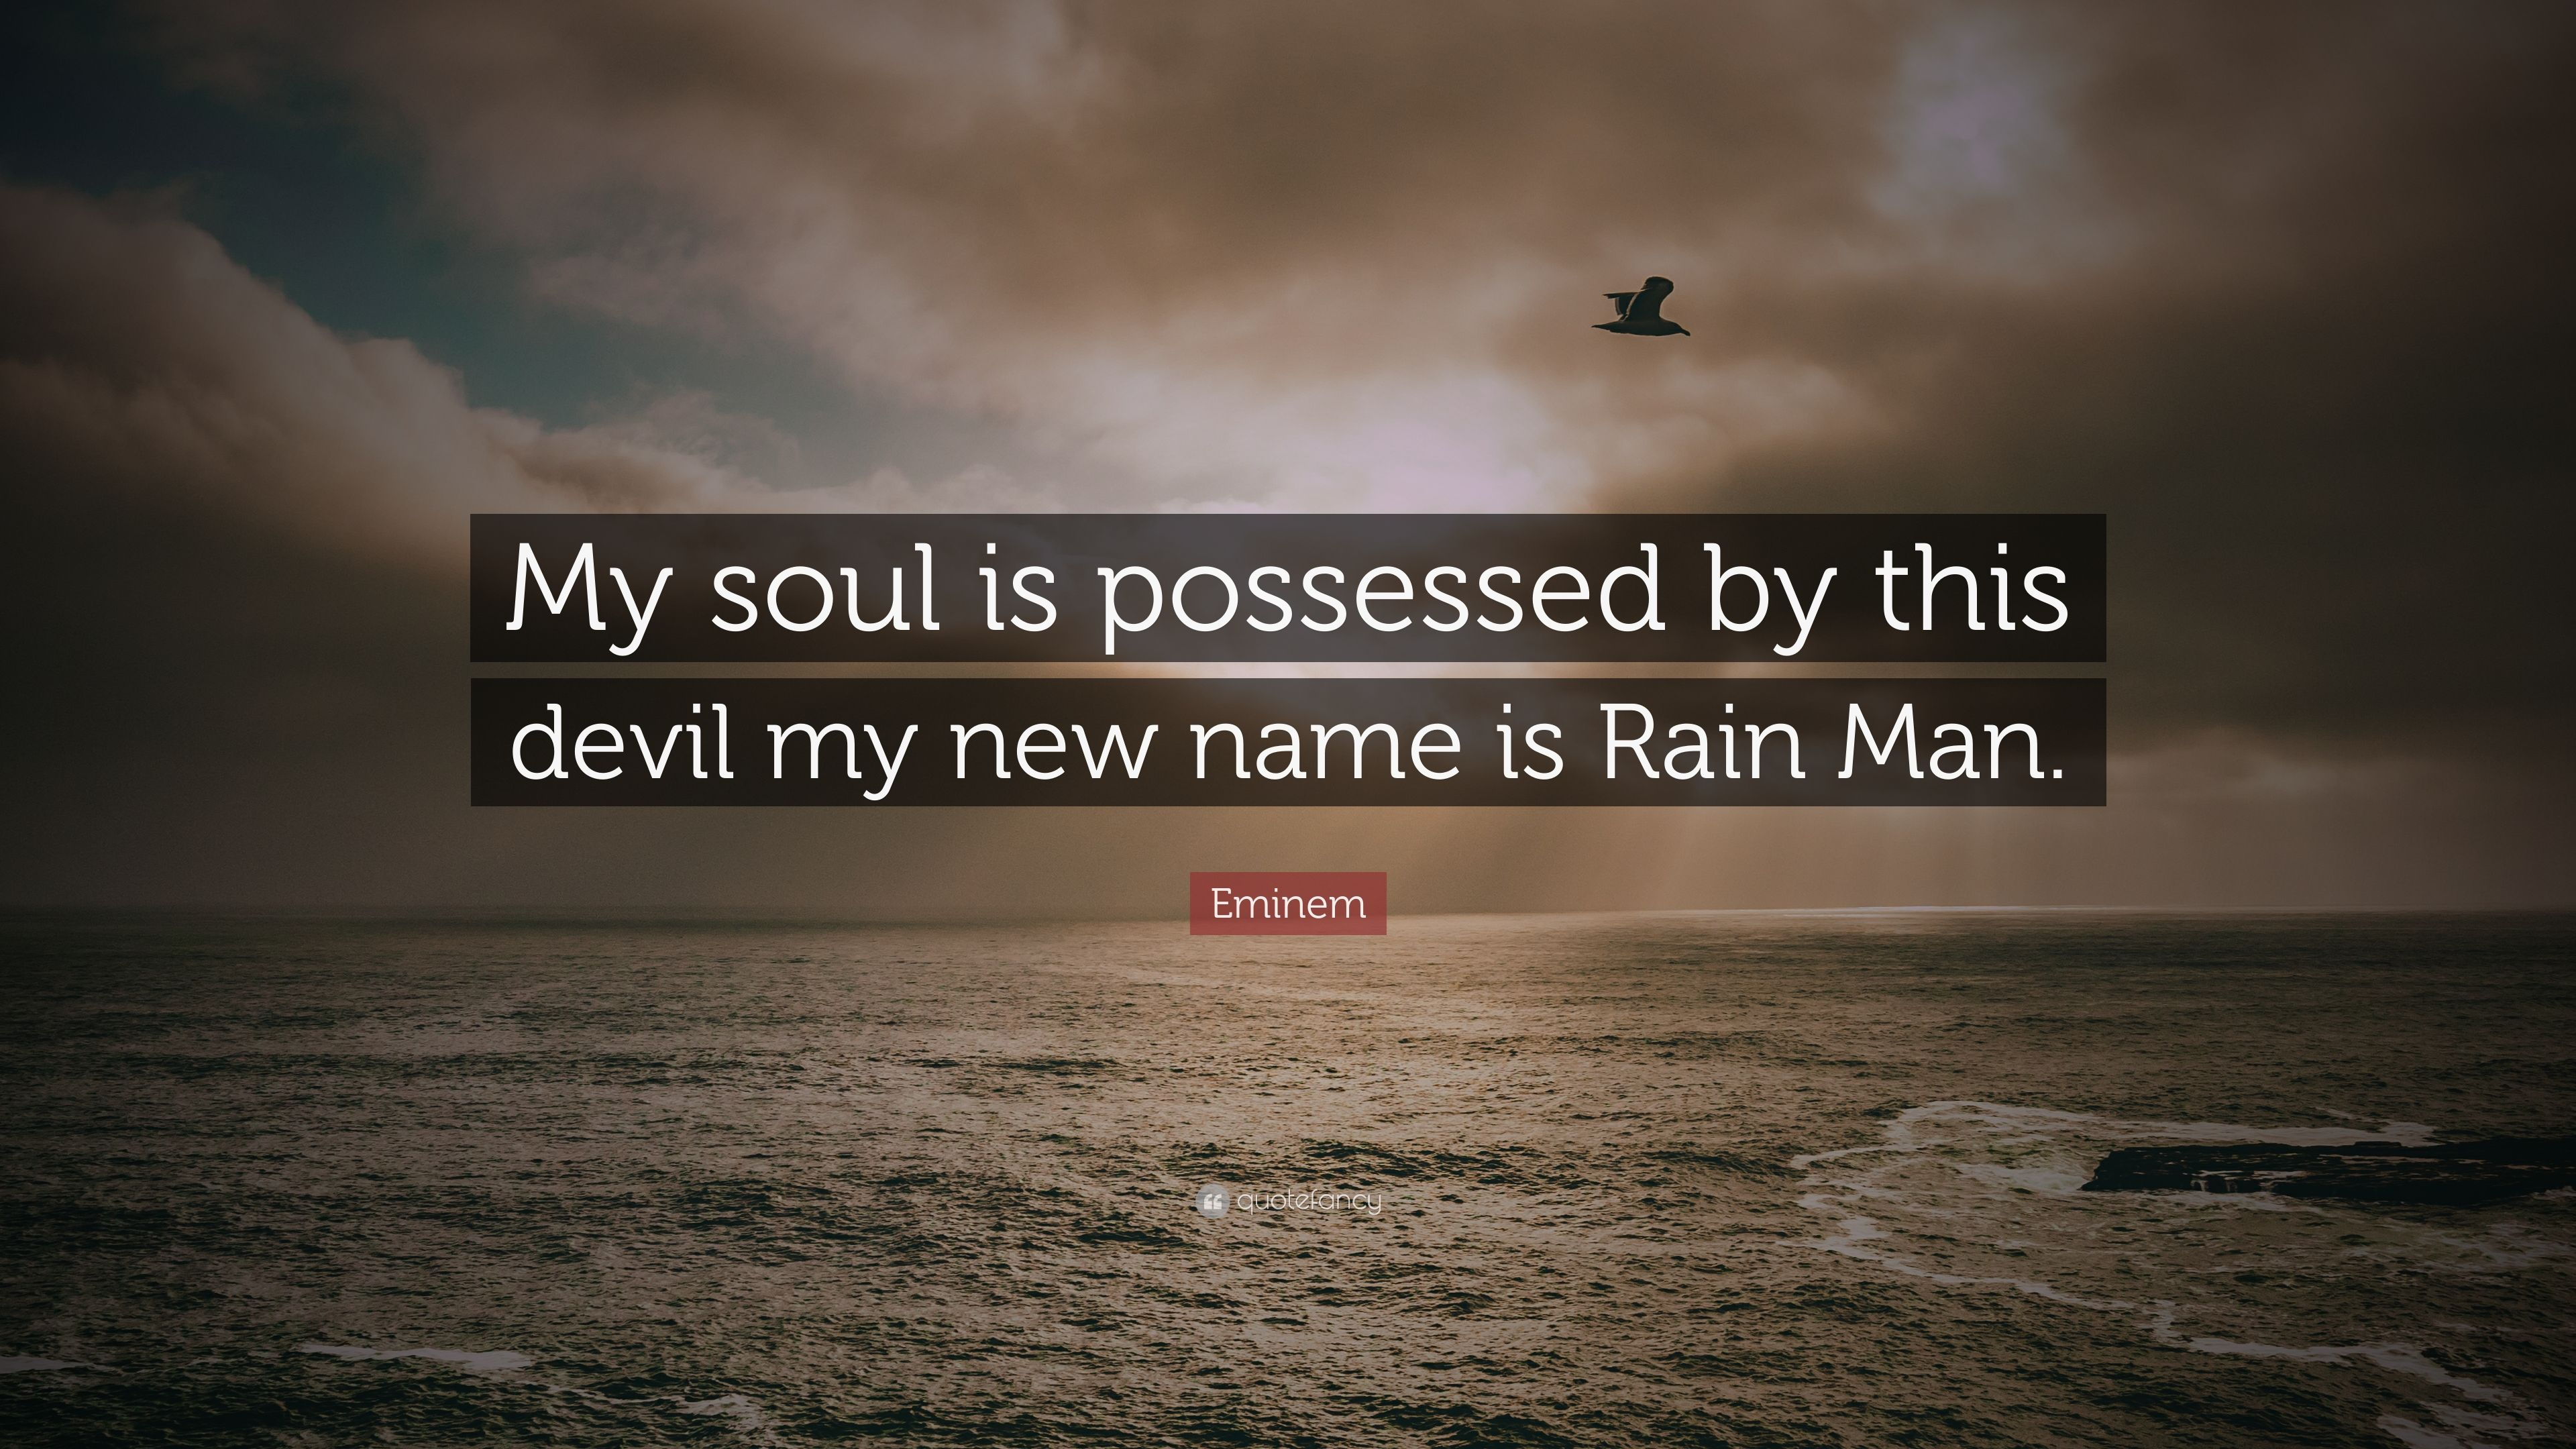 Eminem Quote My Soul Is Possessed By This Devil My New Name Is Rain Man 7 Wallpapers Quotefancy